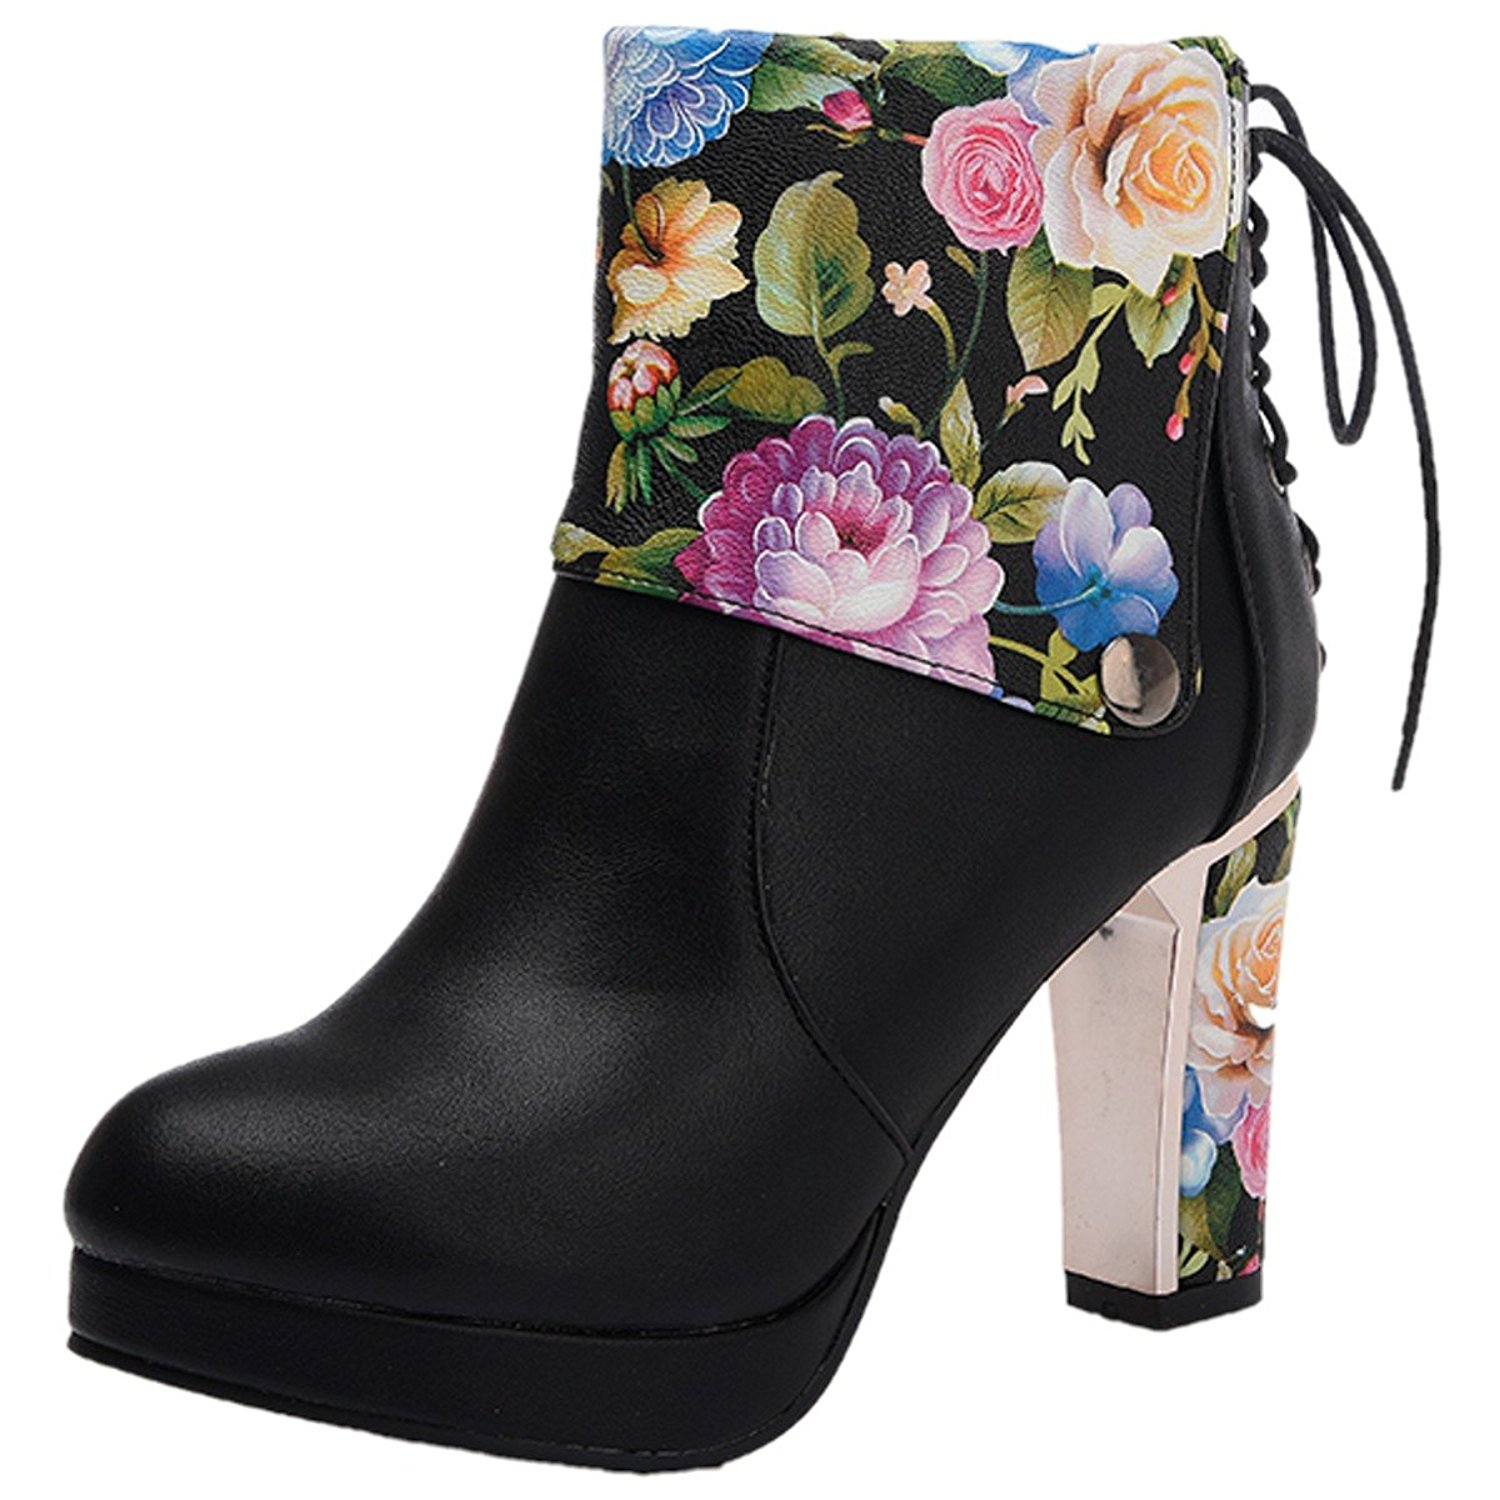 Rongzhi Womens Ankle Boots Thicken Heels Platform Lace Up Zip Round Toe Party Dress Booties Flower